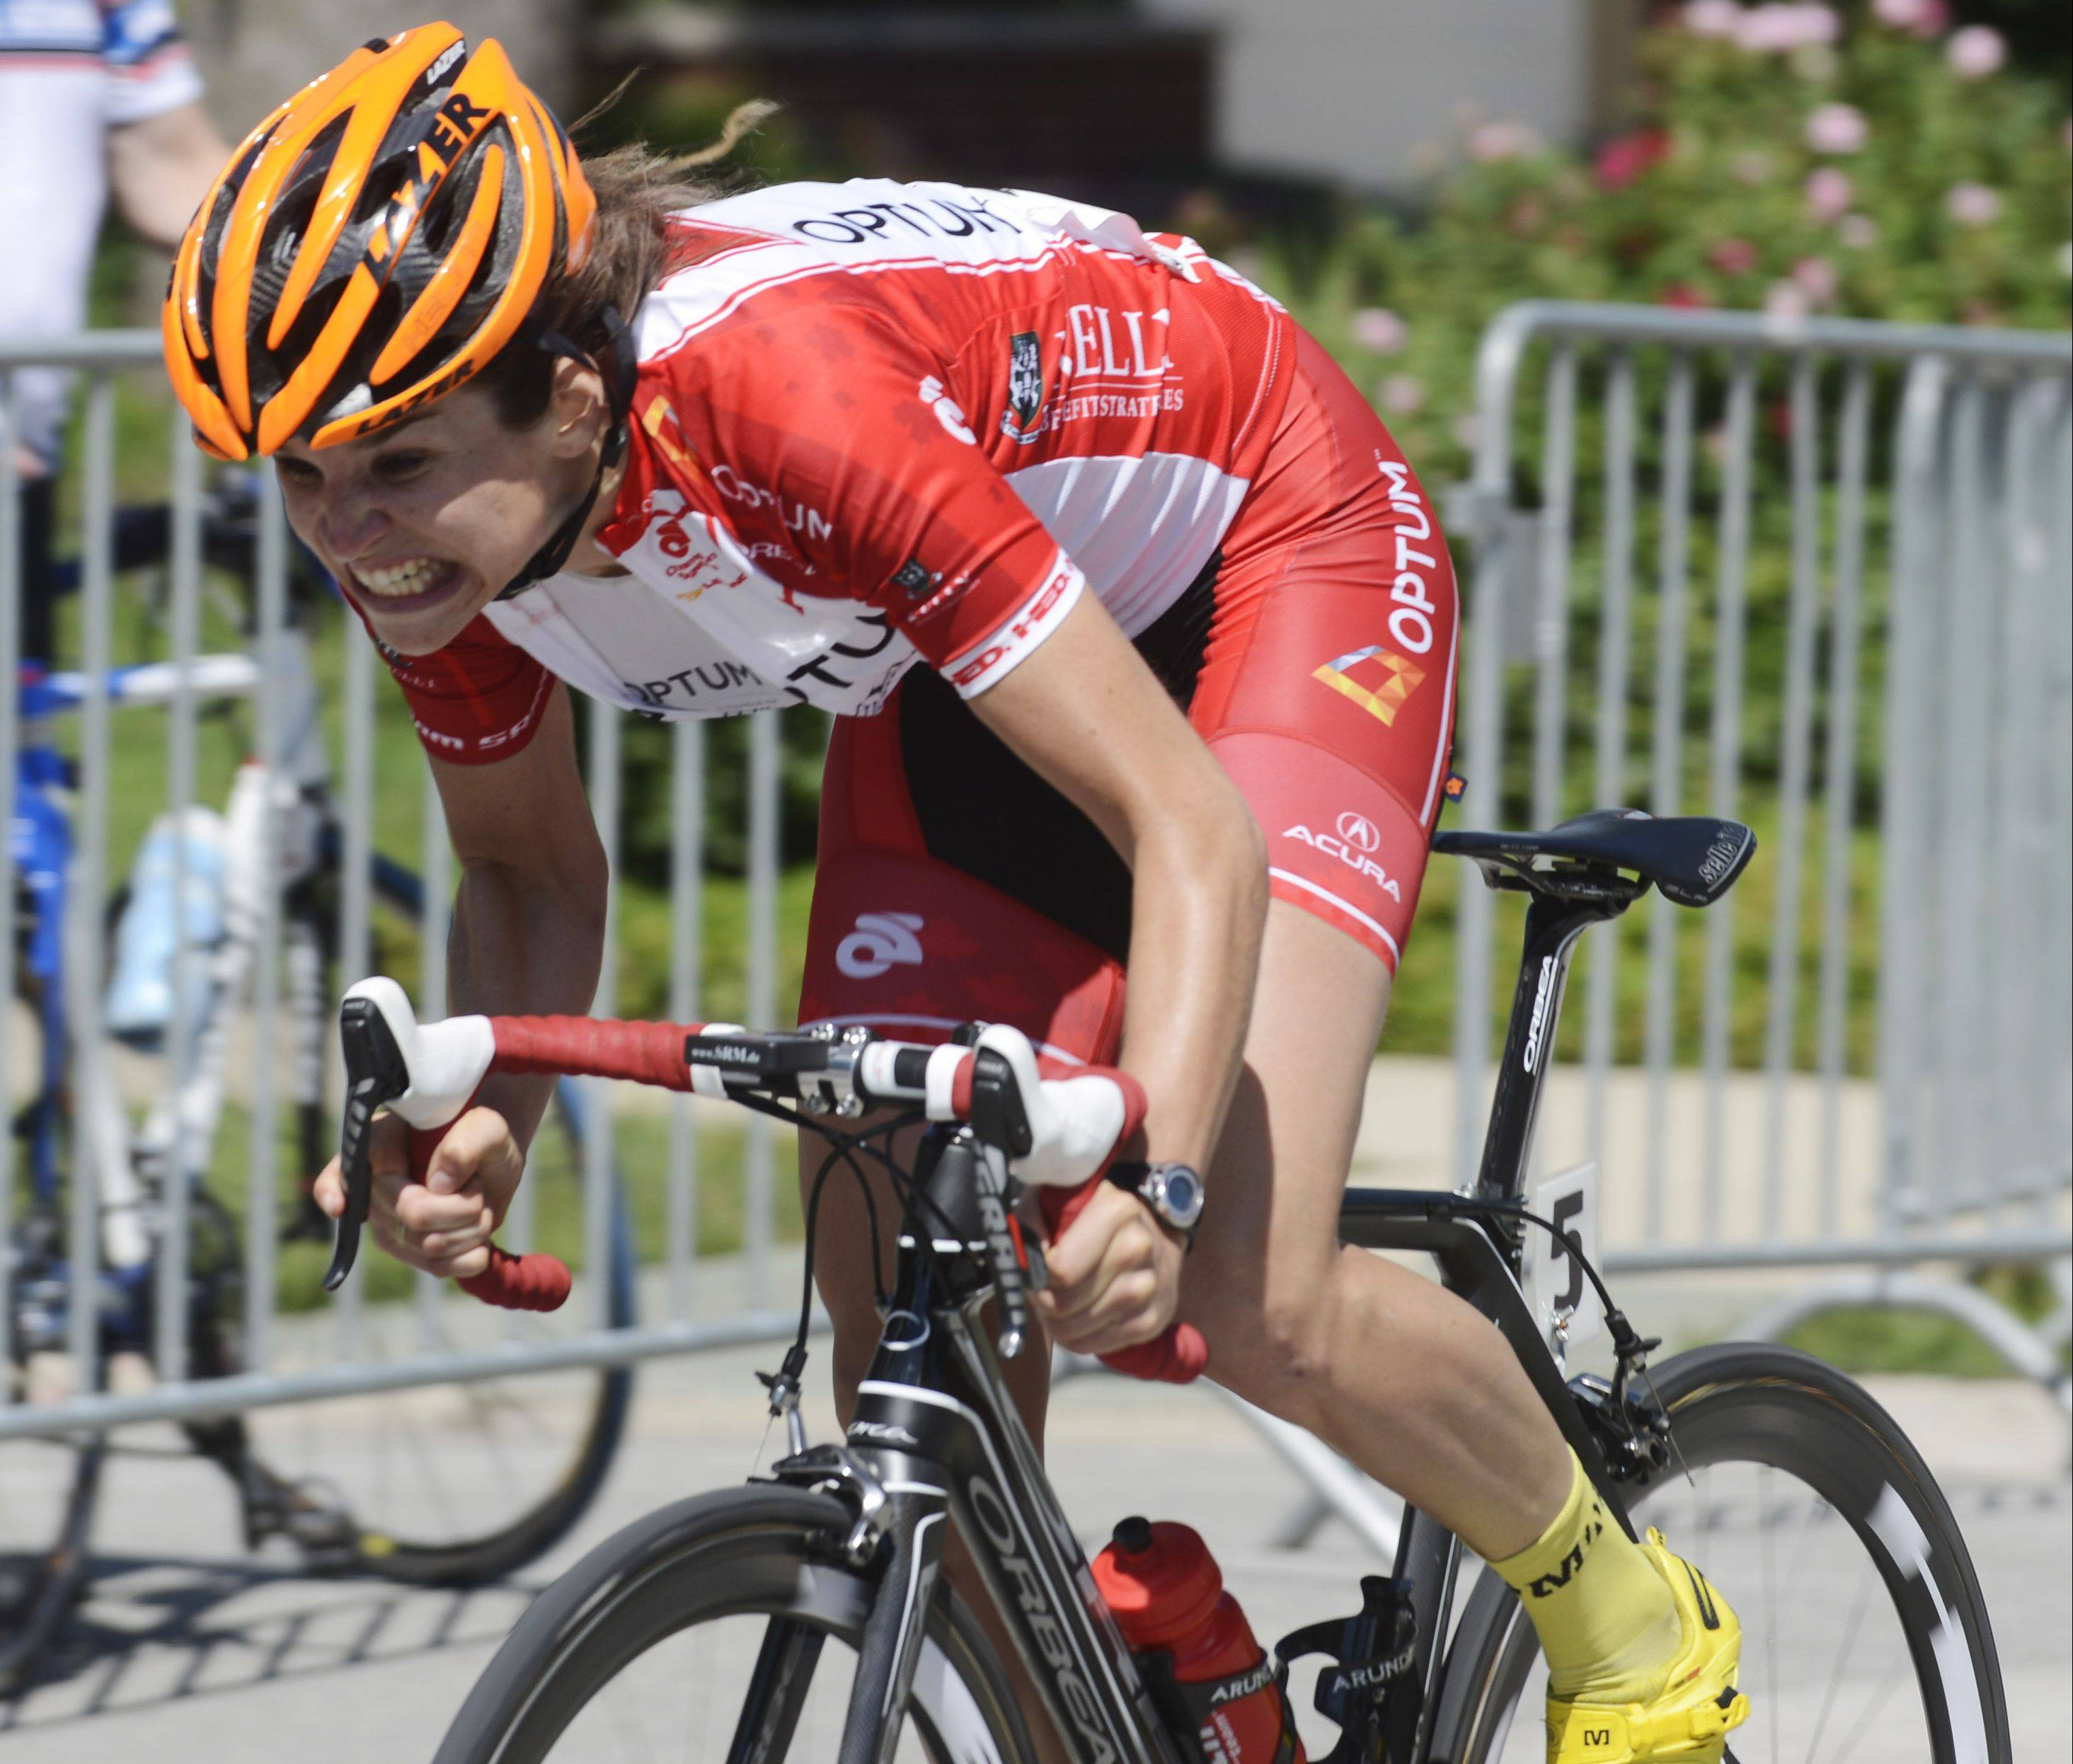 Eventual winner Joelle Numainville grits her teeth while competing Saturday in Stage 2 of the women's pro three-day, three-stage race, a 45.3-mile criterium, at of the Tour of Elk Grove.